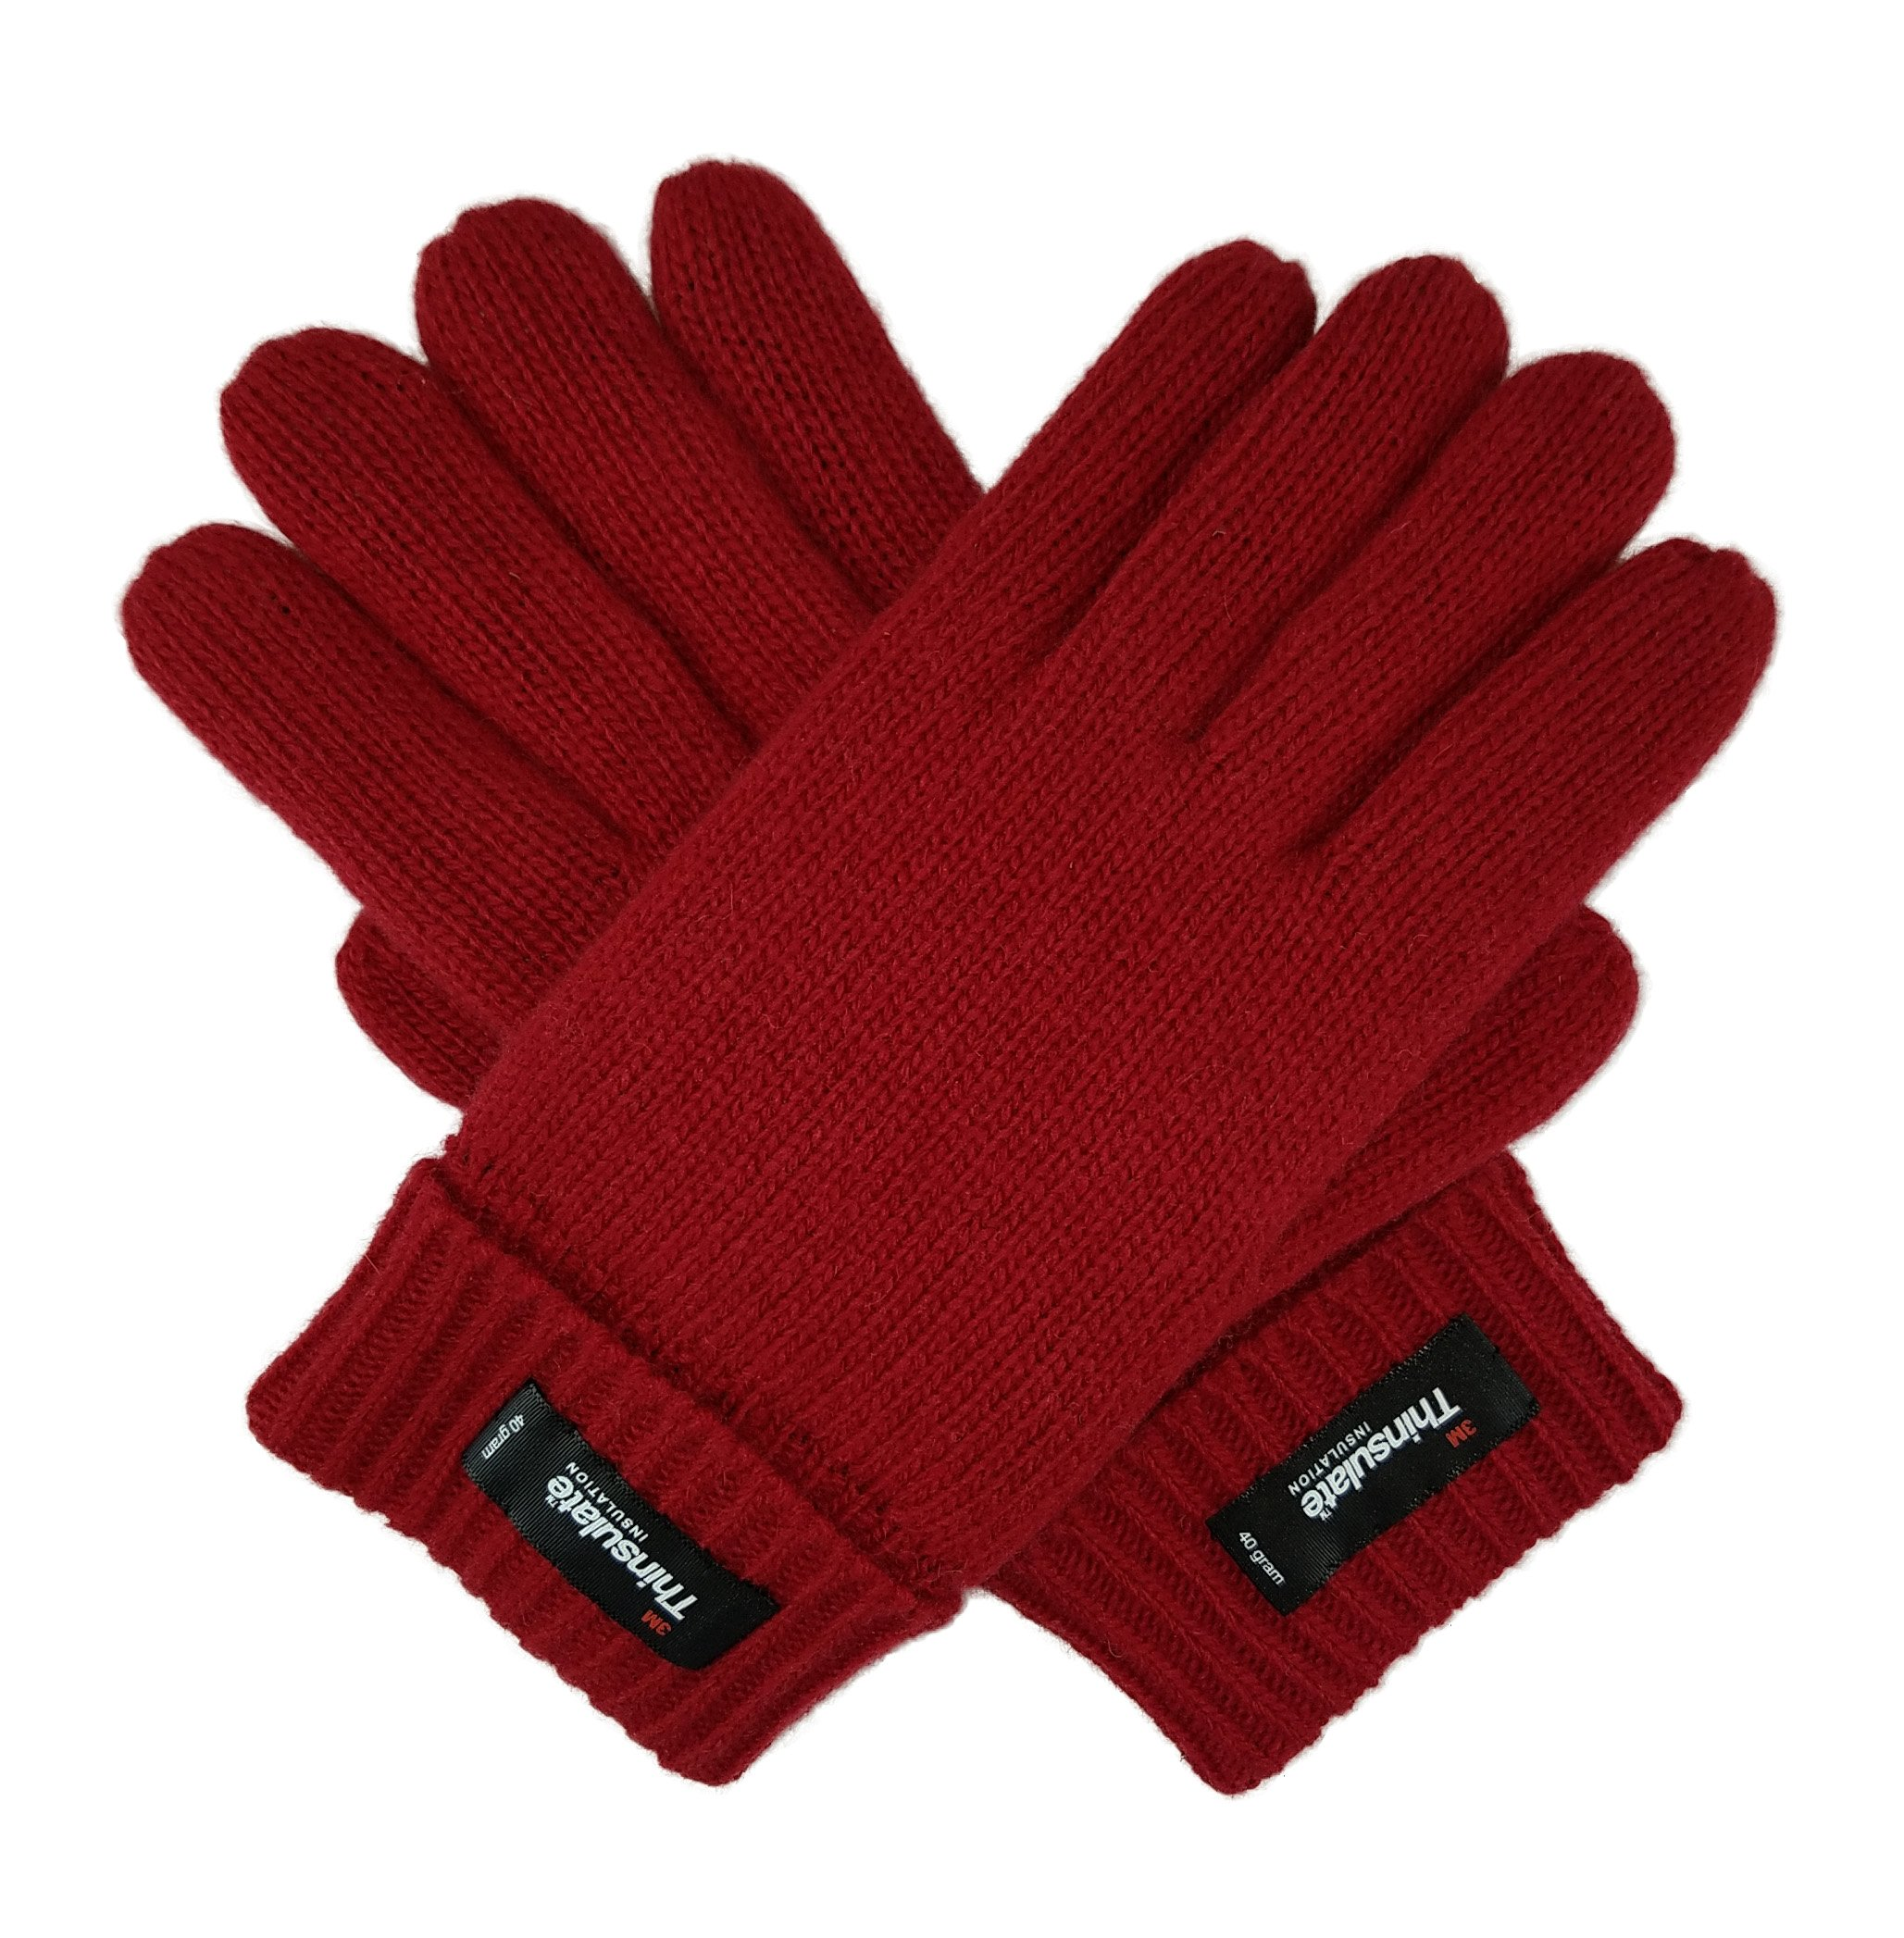 Bruceriver Ladie's Wool Knit Gloves with Thinsulate Lining Size L (Red)